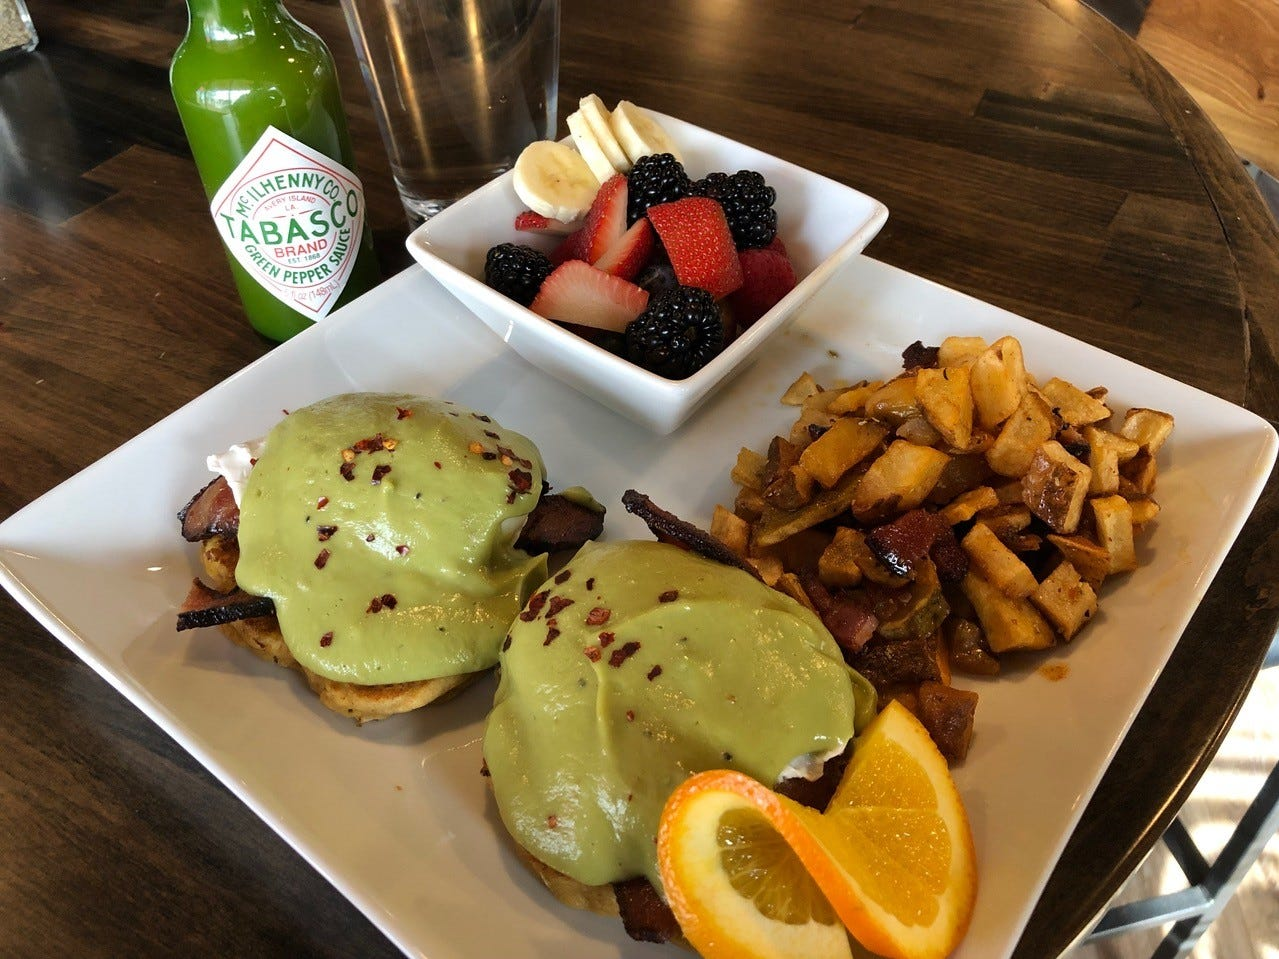 In February 2019, sweet corn cakes eggs Benedict with avocado hollandaise are on the Sunday brunch menu at Vintage Public House in Redding.